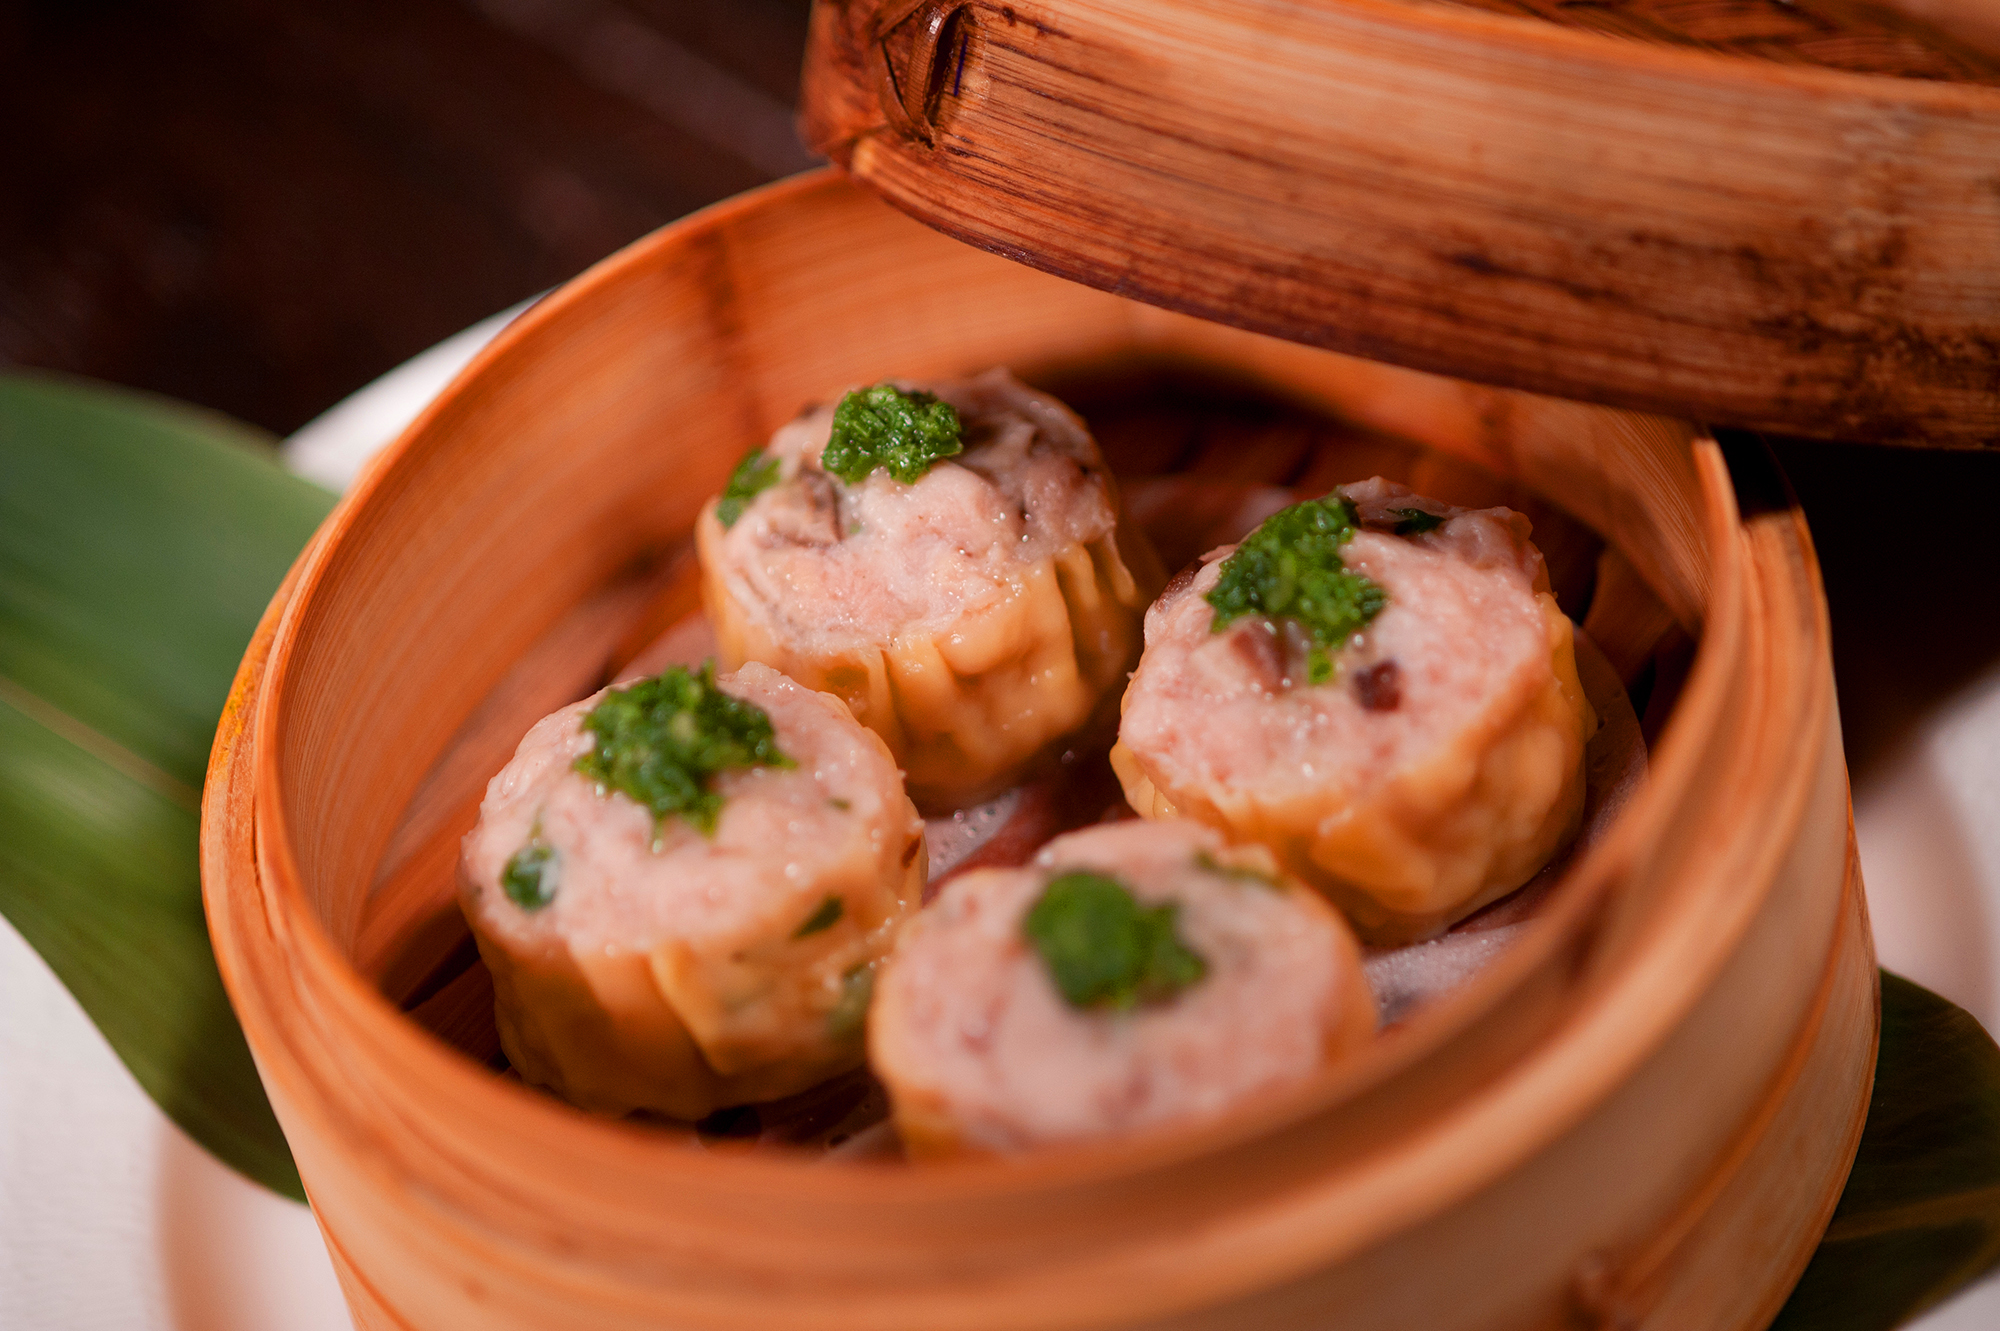 Shumai in wood dish